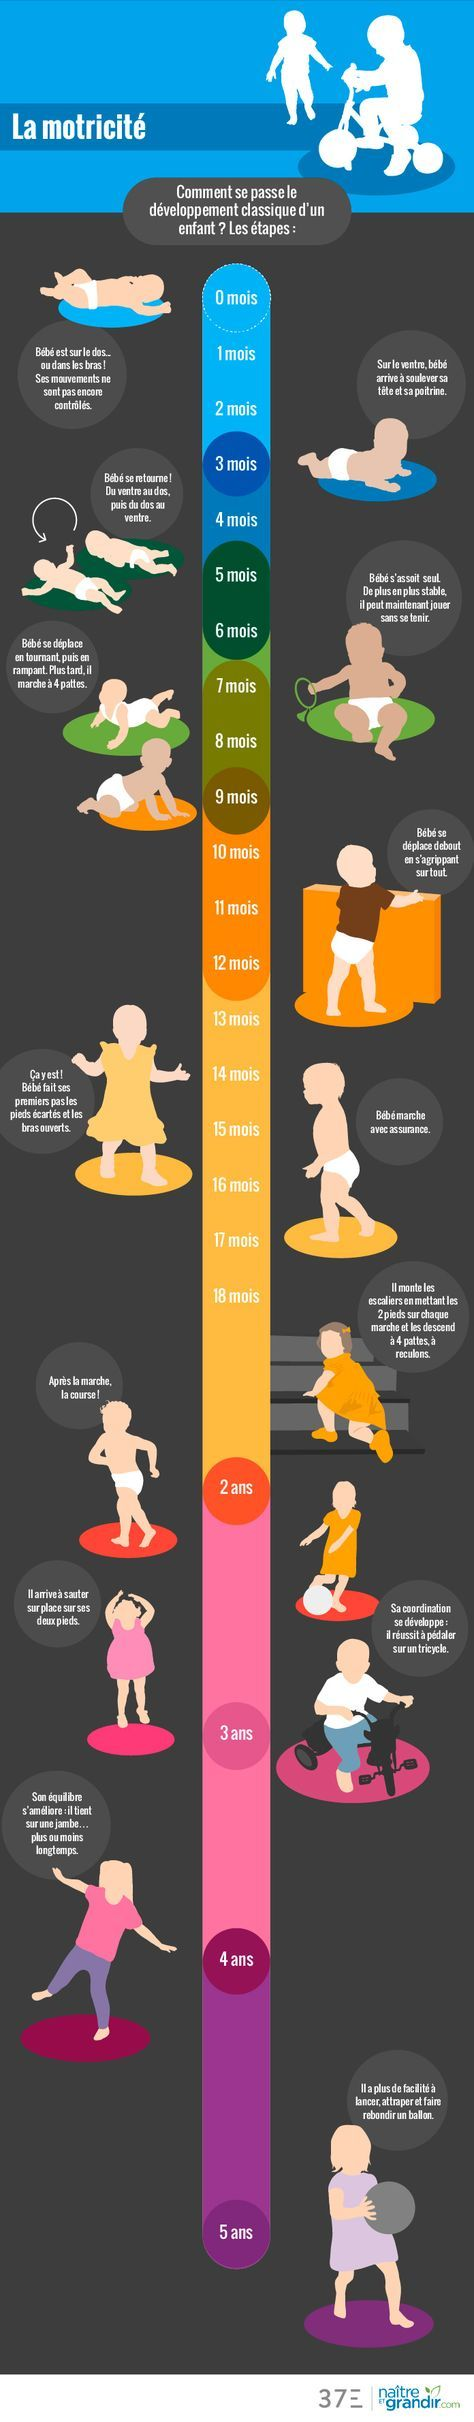 How is the classic development of a child from 0 to 5 years old? Here are the big steps.